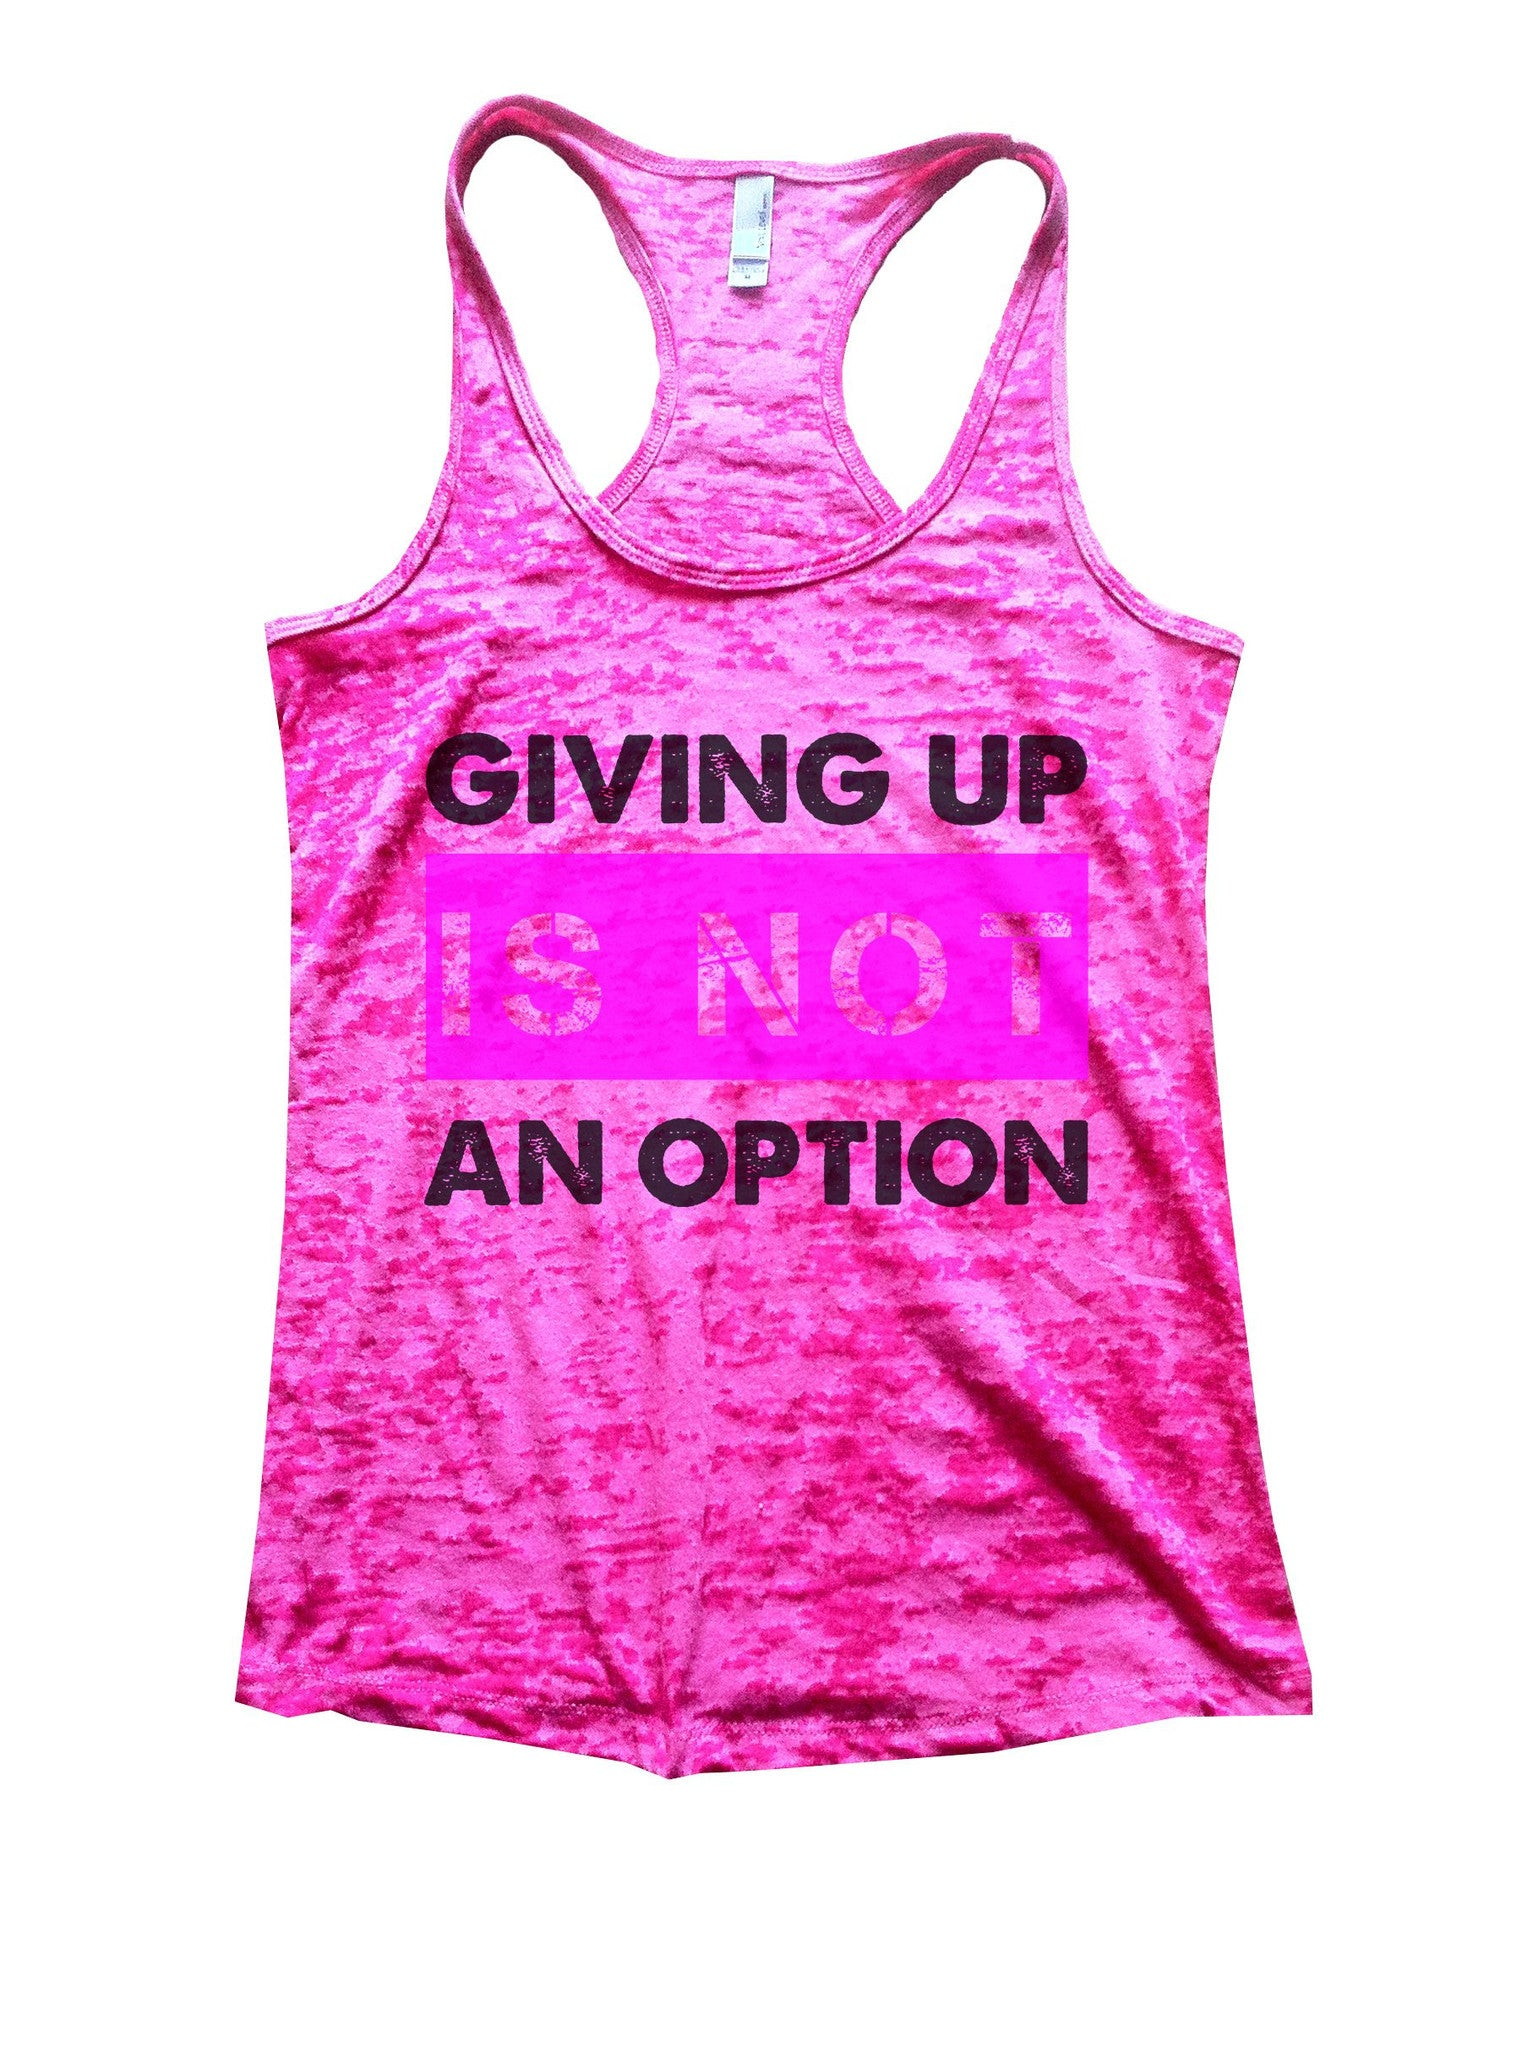 Giving Up Is Not An Option Burnout Tank Top By BurnoutTankTops.com - 844 - Funny Shirts Tank Tops Burnouts and Triblends  - 5